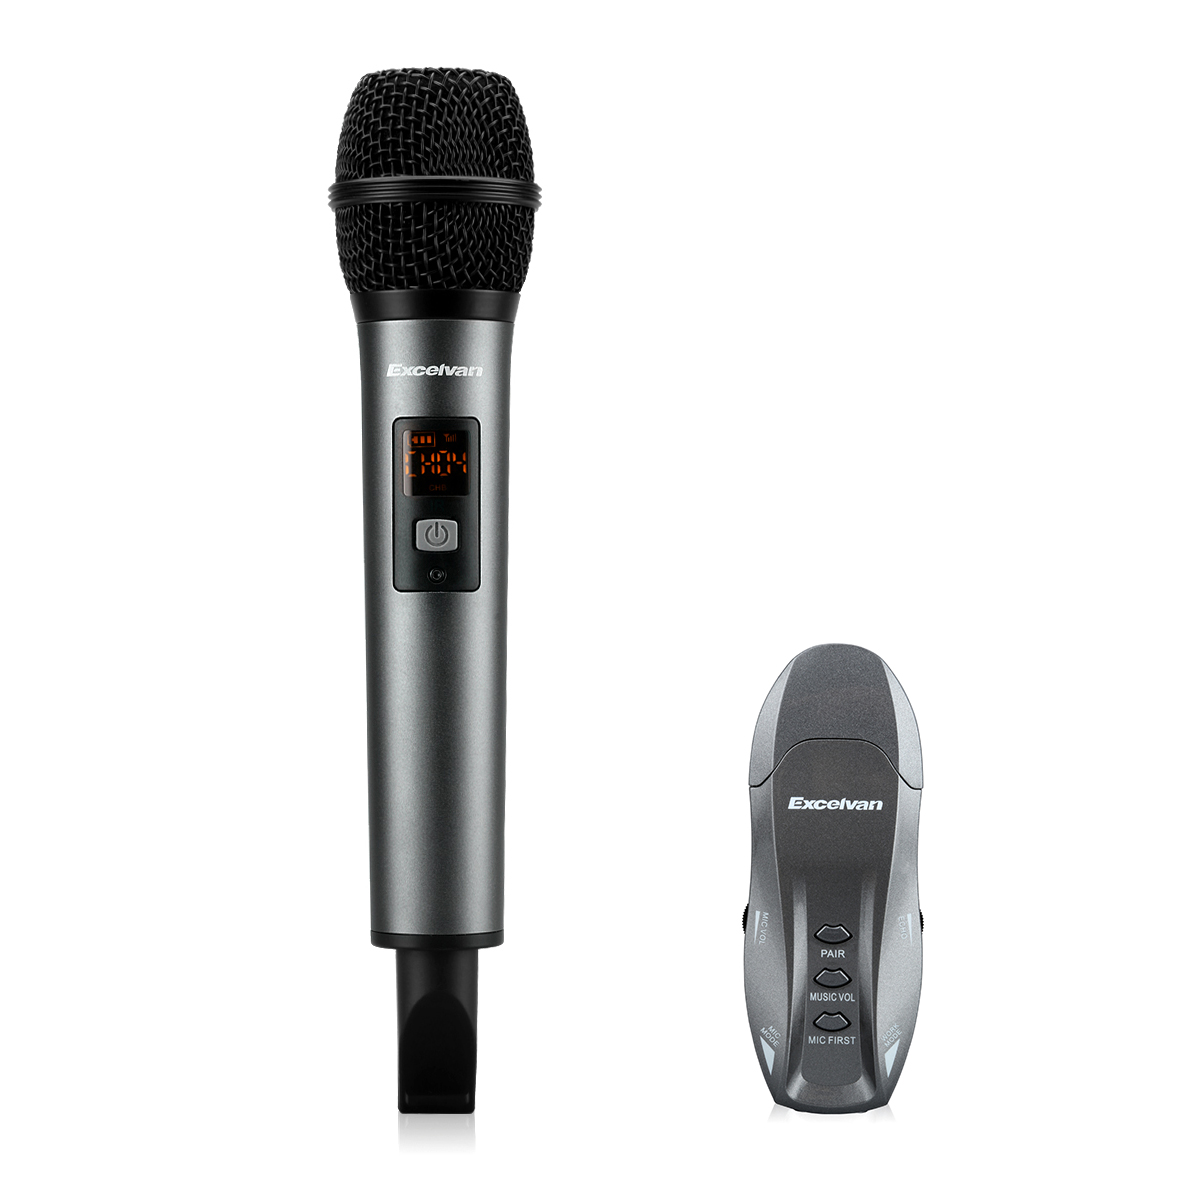 Excelvan K18V Wireless Bluetooth Microphone Wireless With Receptor Support APP For Home Entertainment Conference